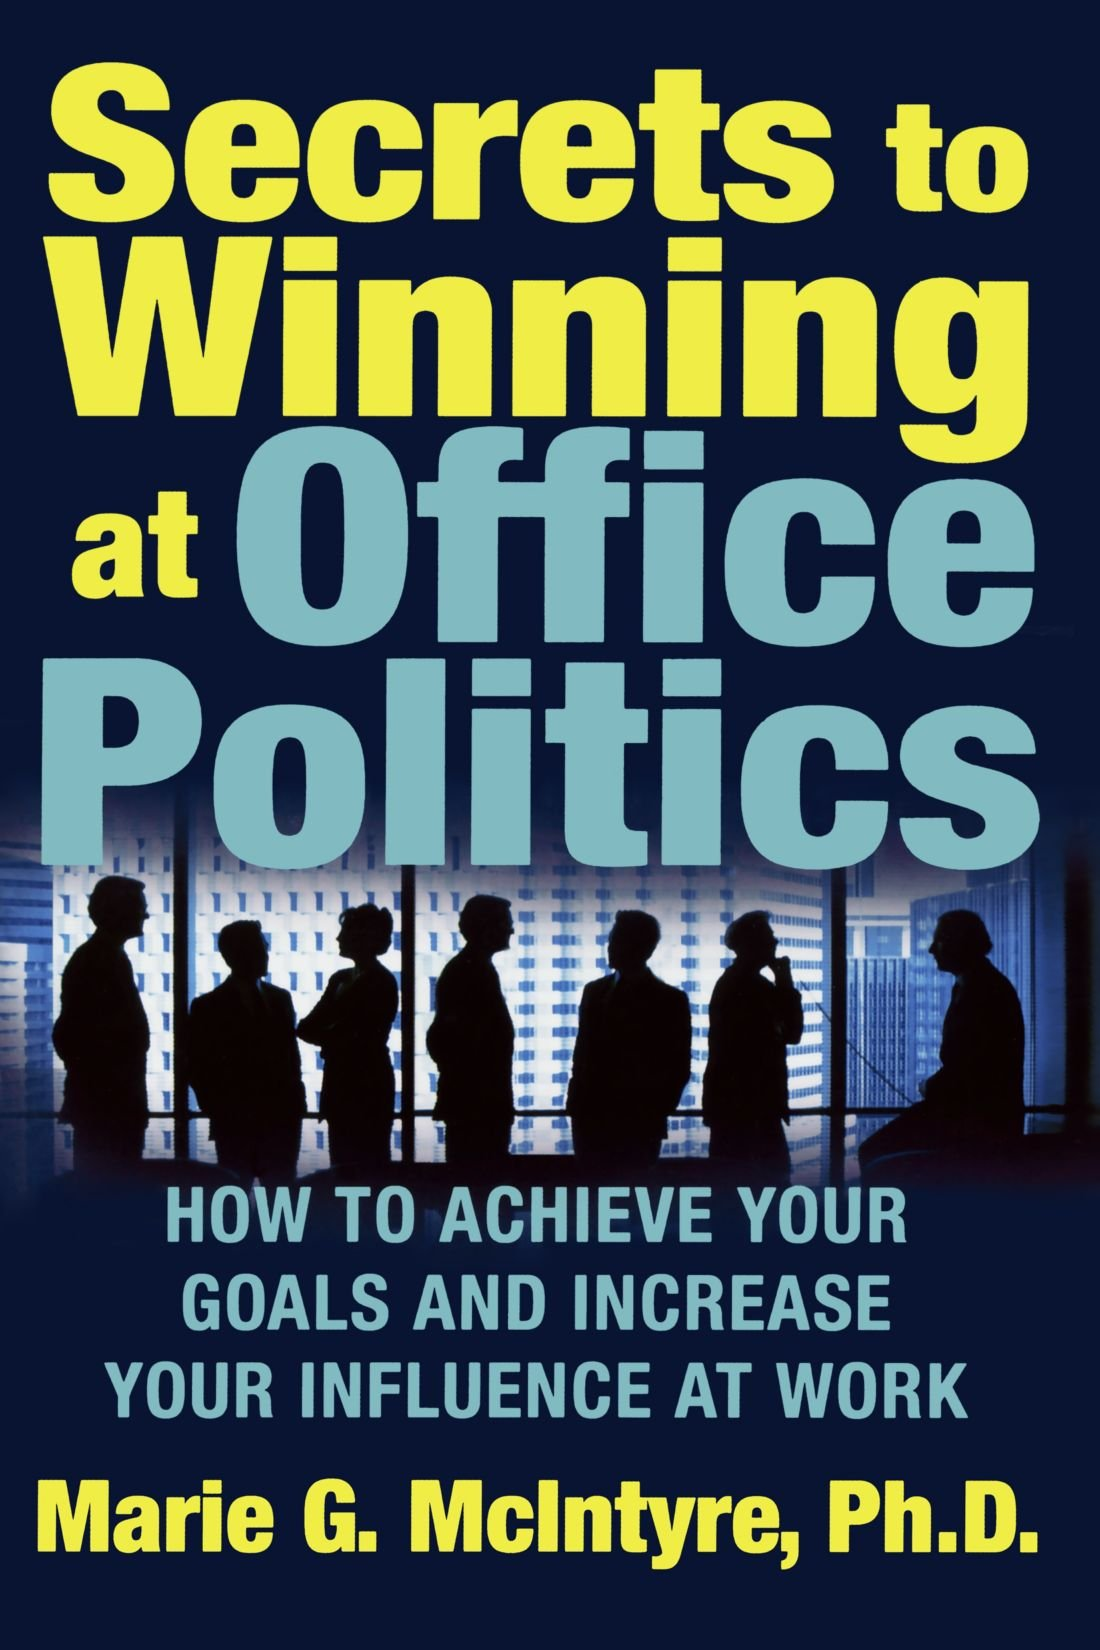 secrets to winning at office politics how to achieve your goals secrets to winning at office politics how to achieve your goals and increase your influence at work marie g mcintyre 2015312332181 amazon com books